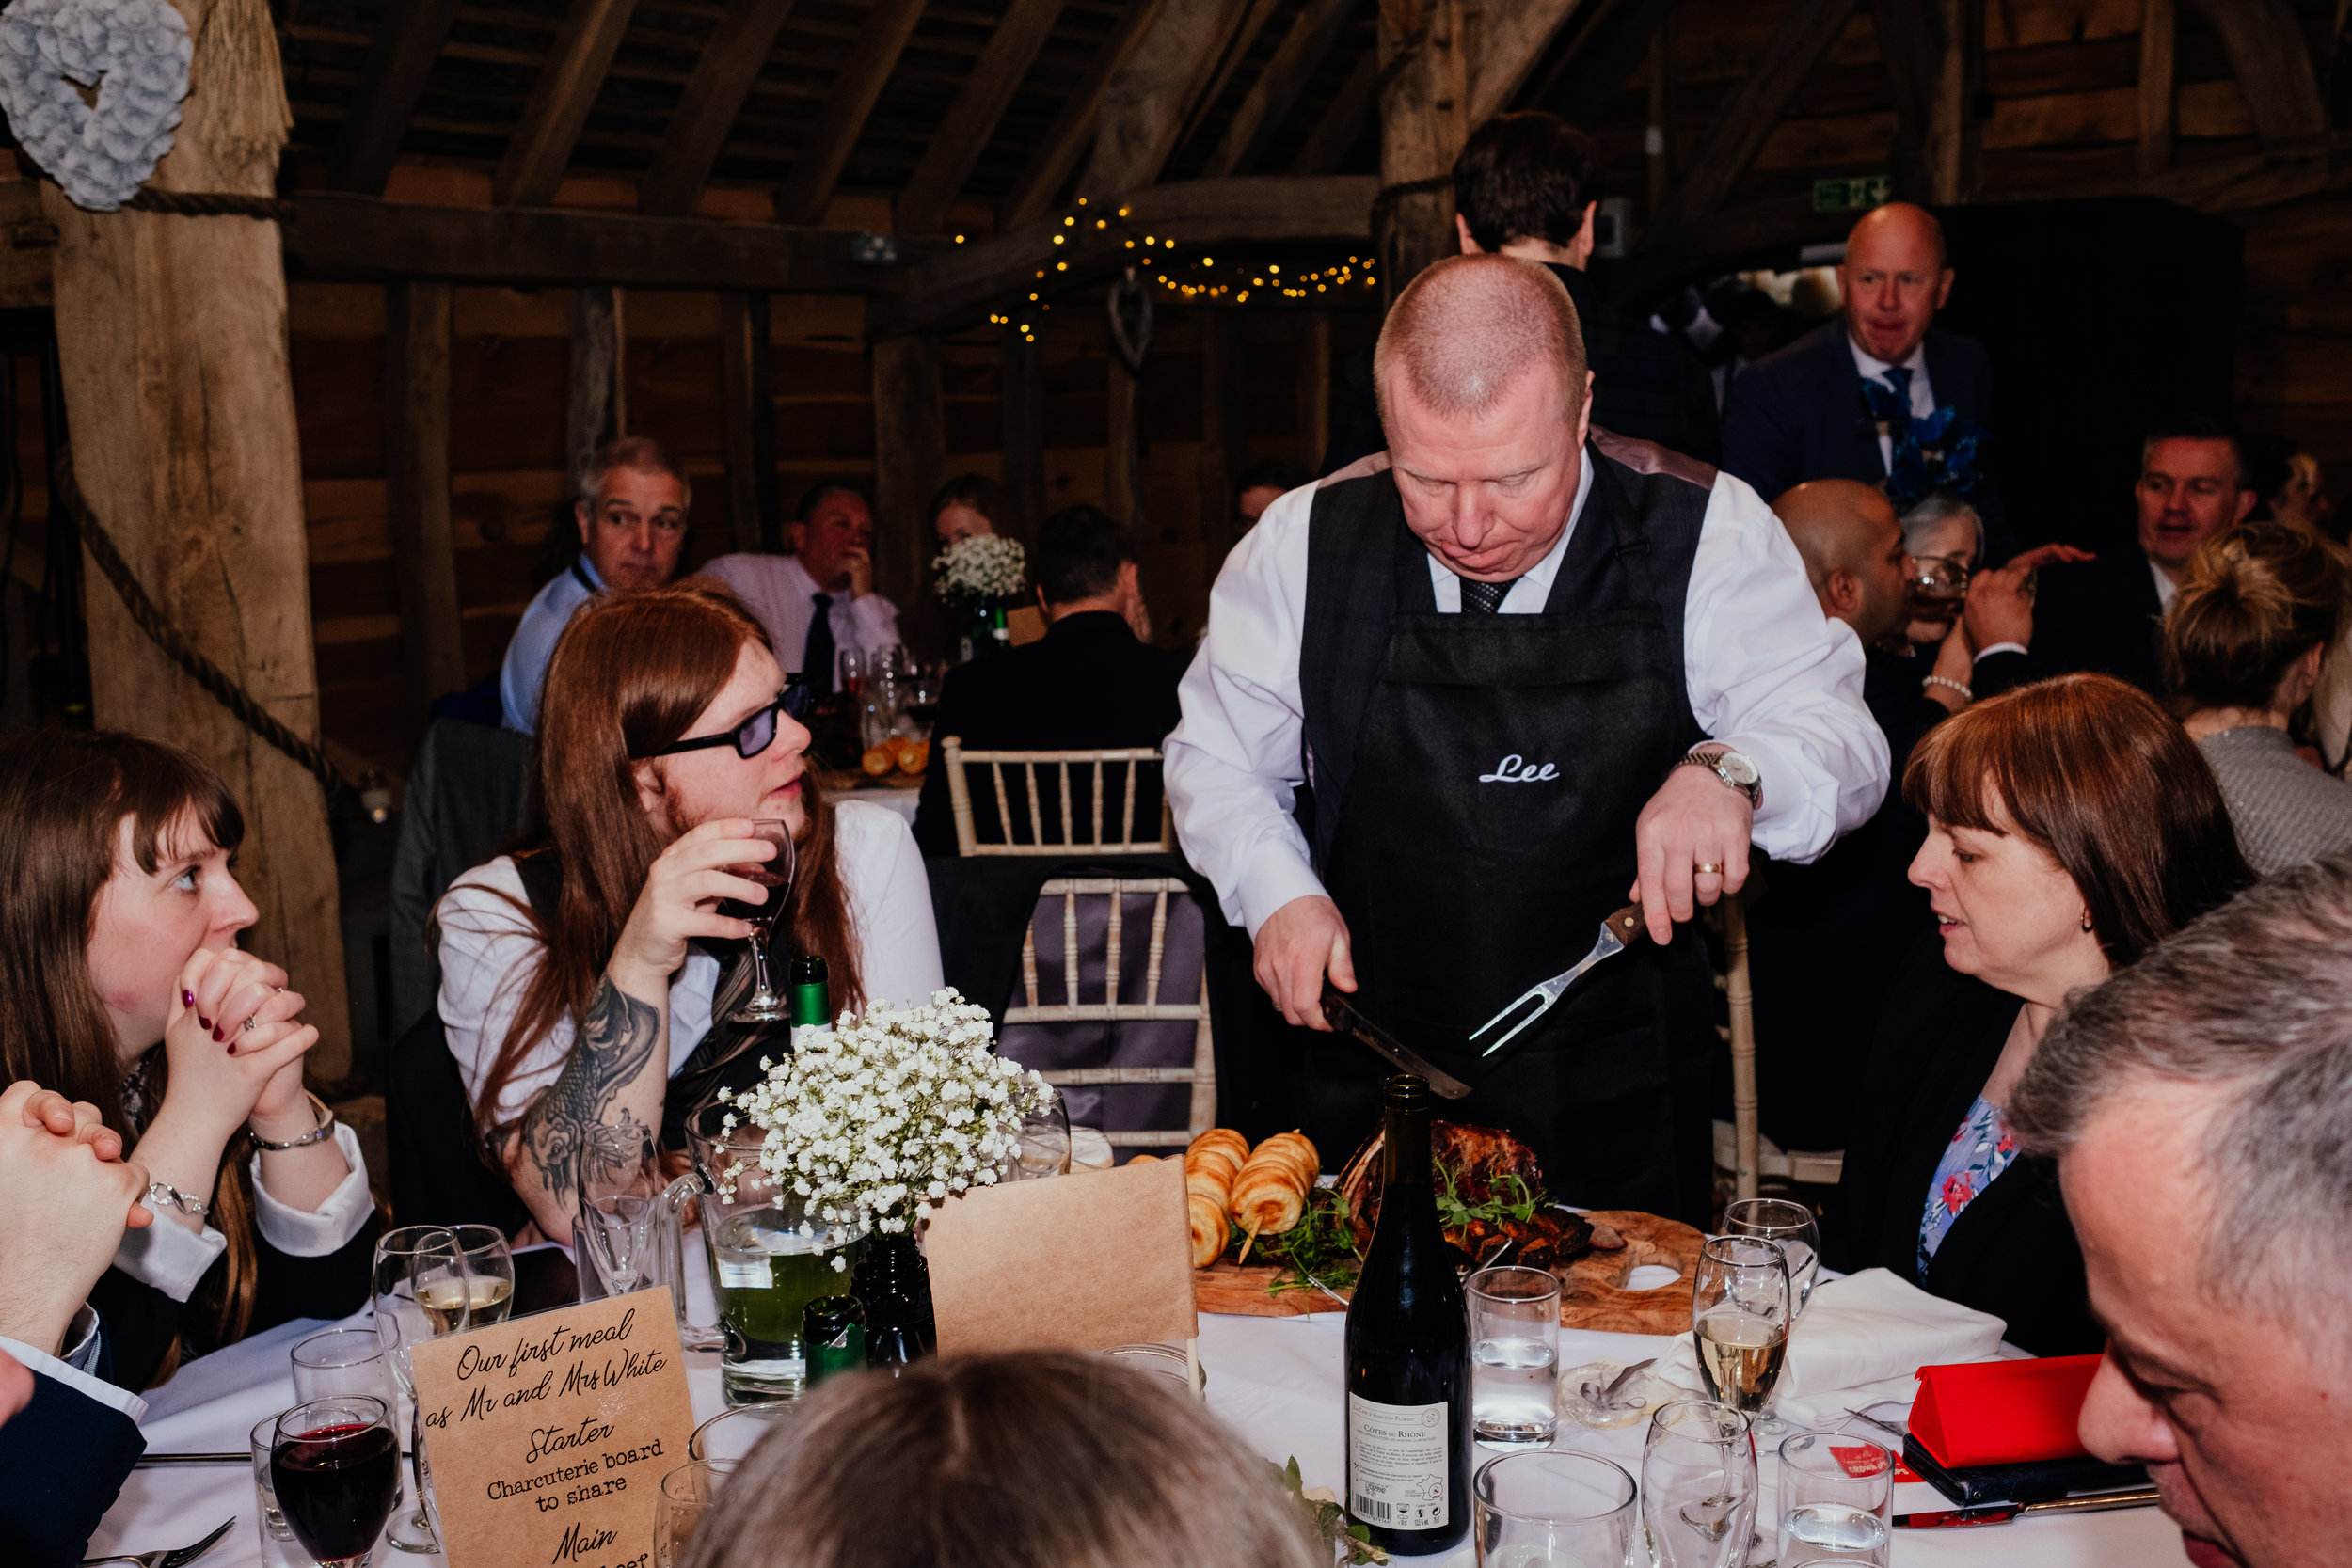 Wedding guests carve meat at their table